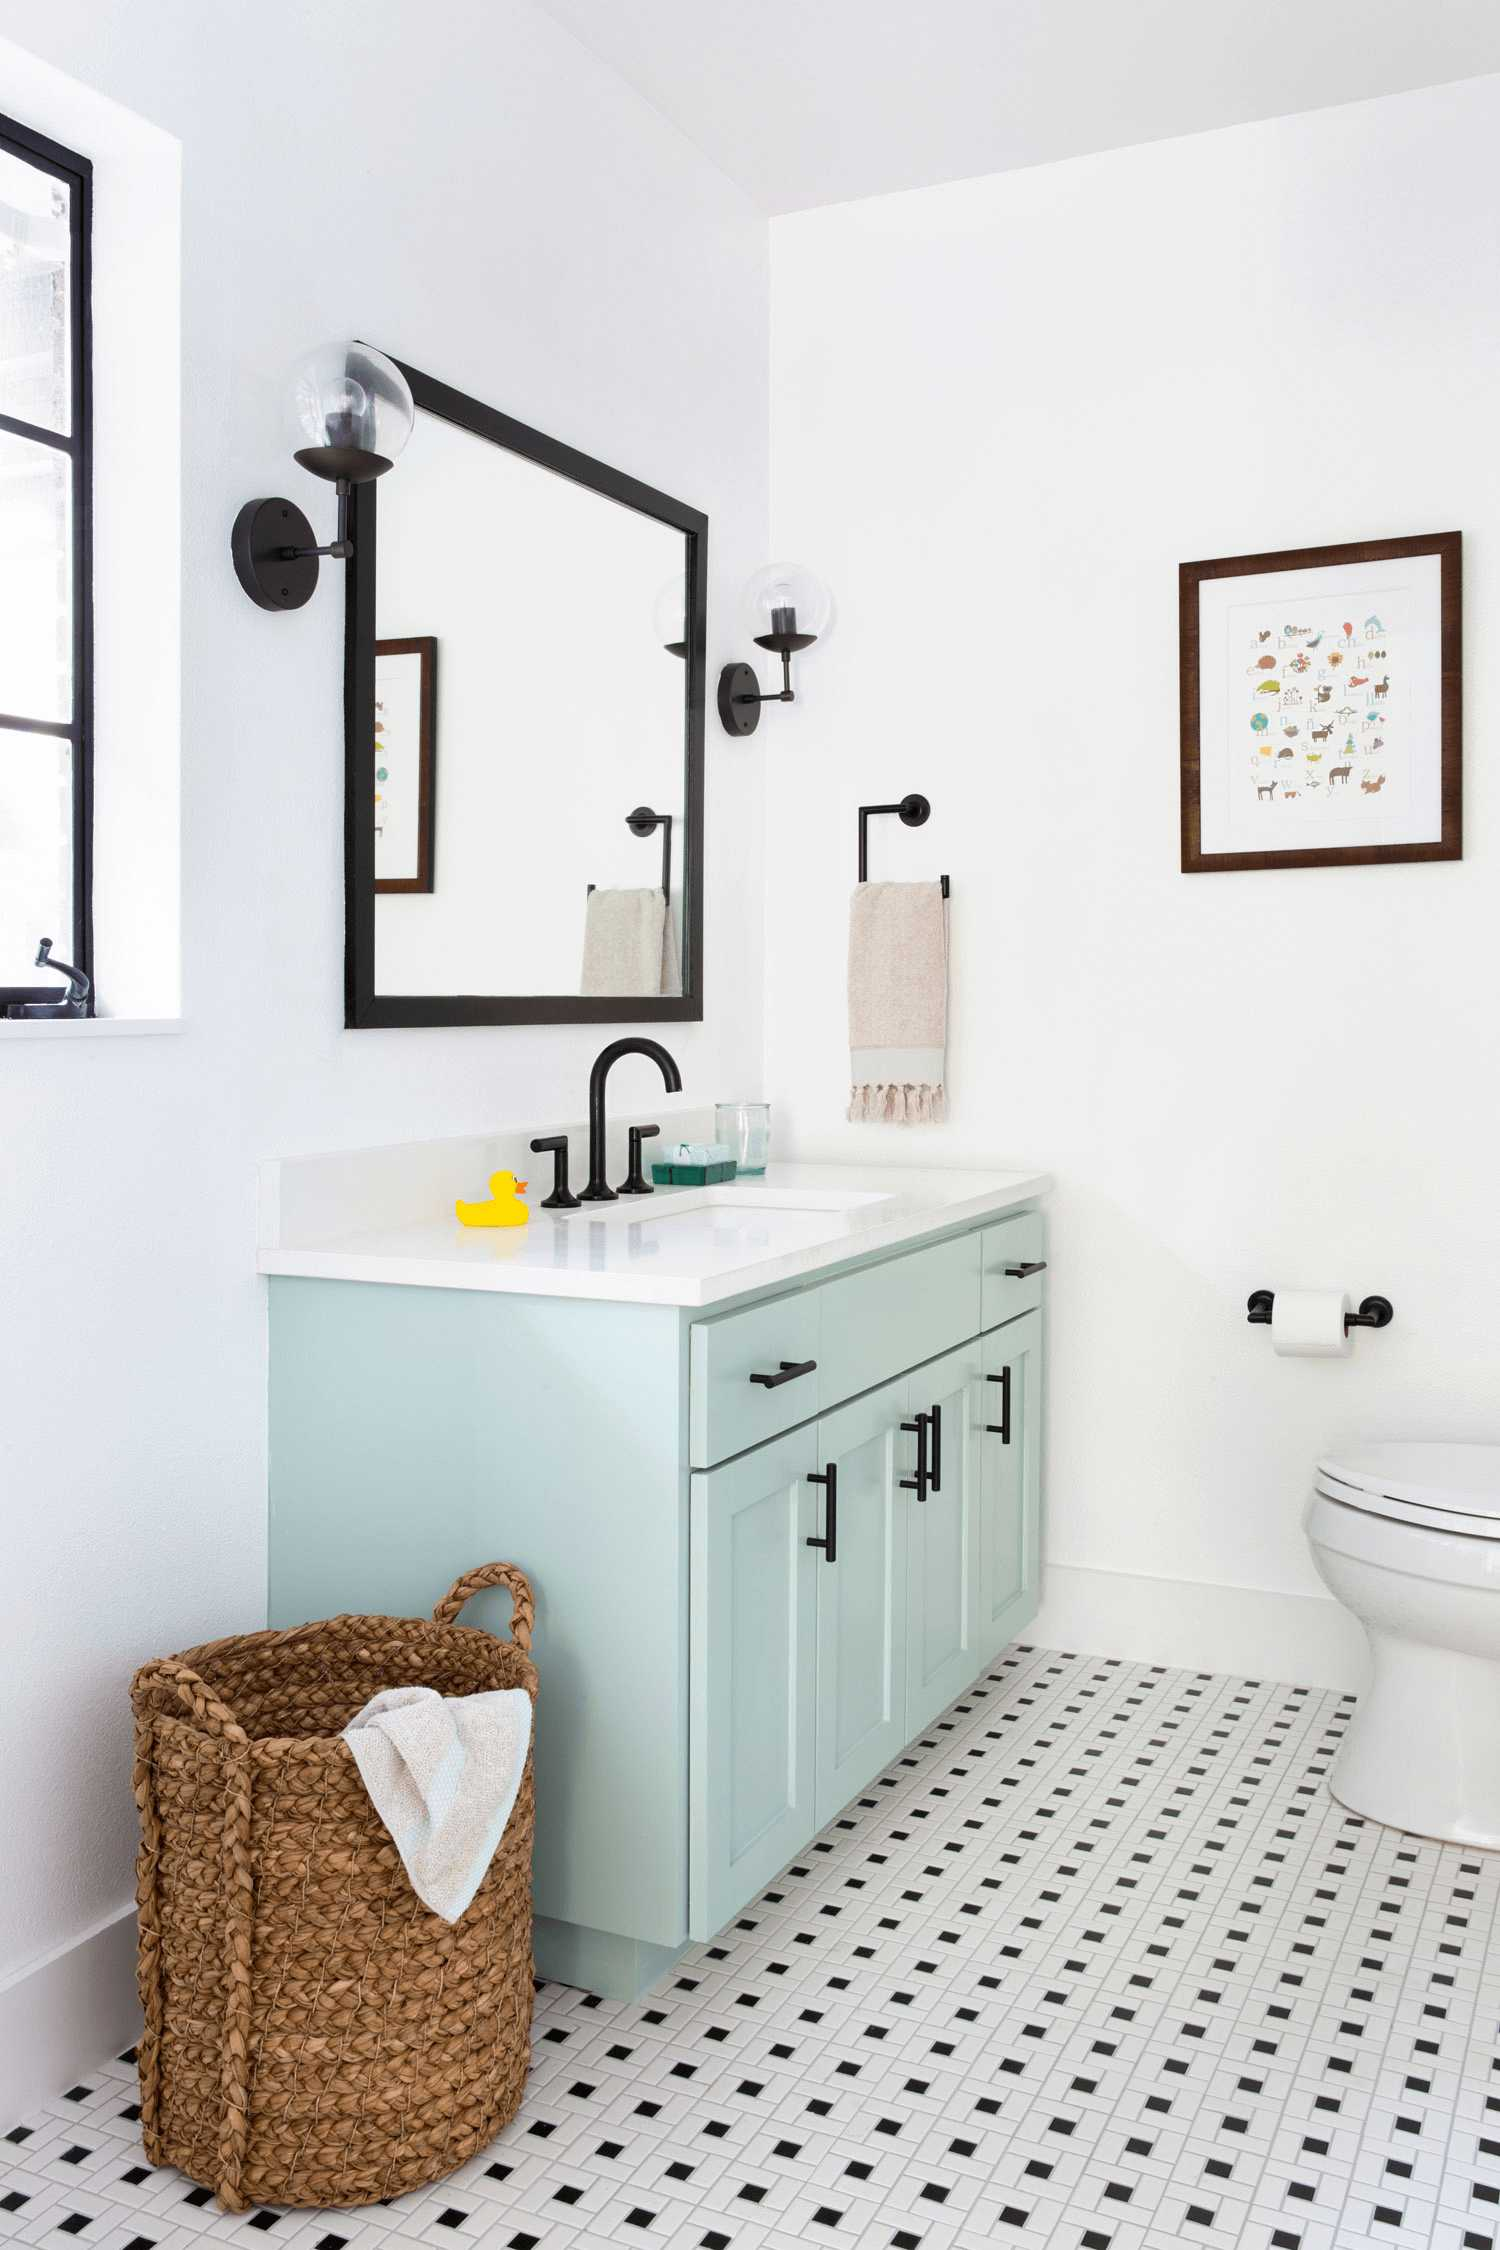 this-is-a-bathroom-showcasing-the-best-aspects-of-mid-century-modern-through-use-of-colours